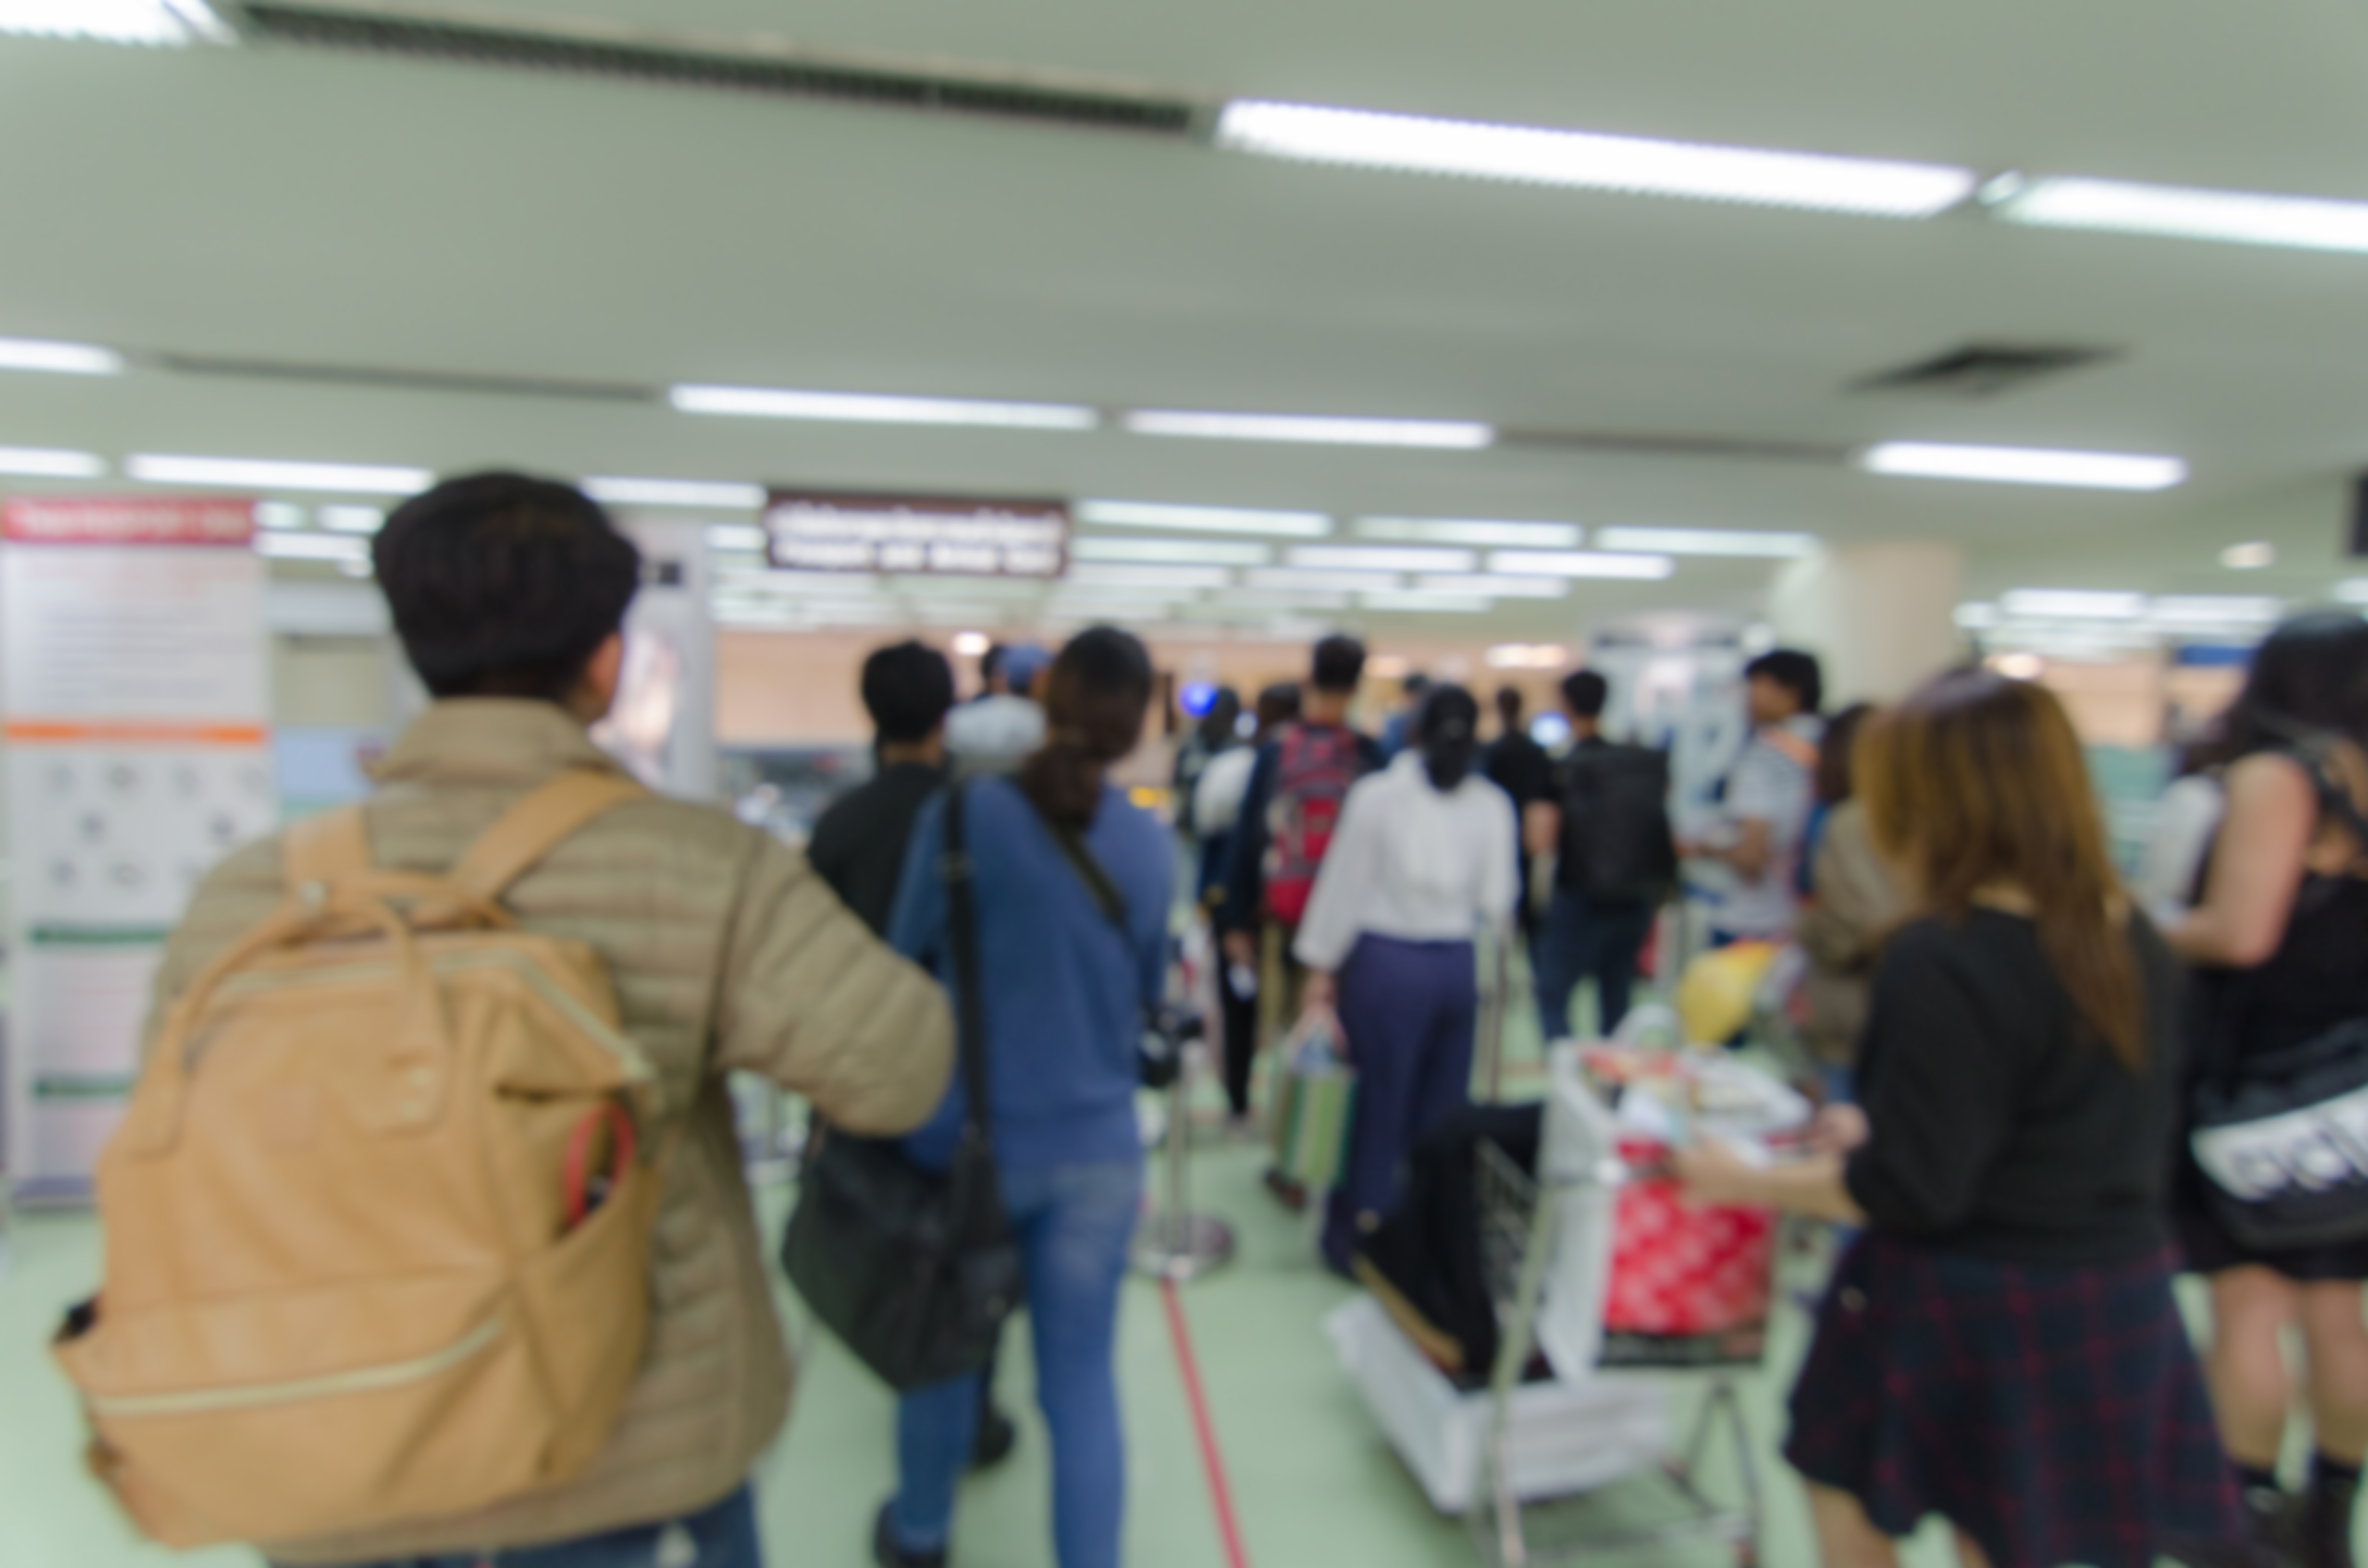 Crowded immigration line